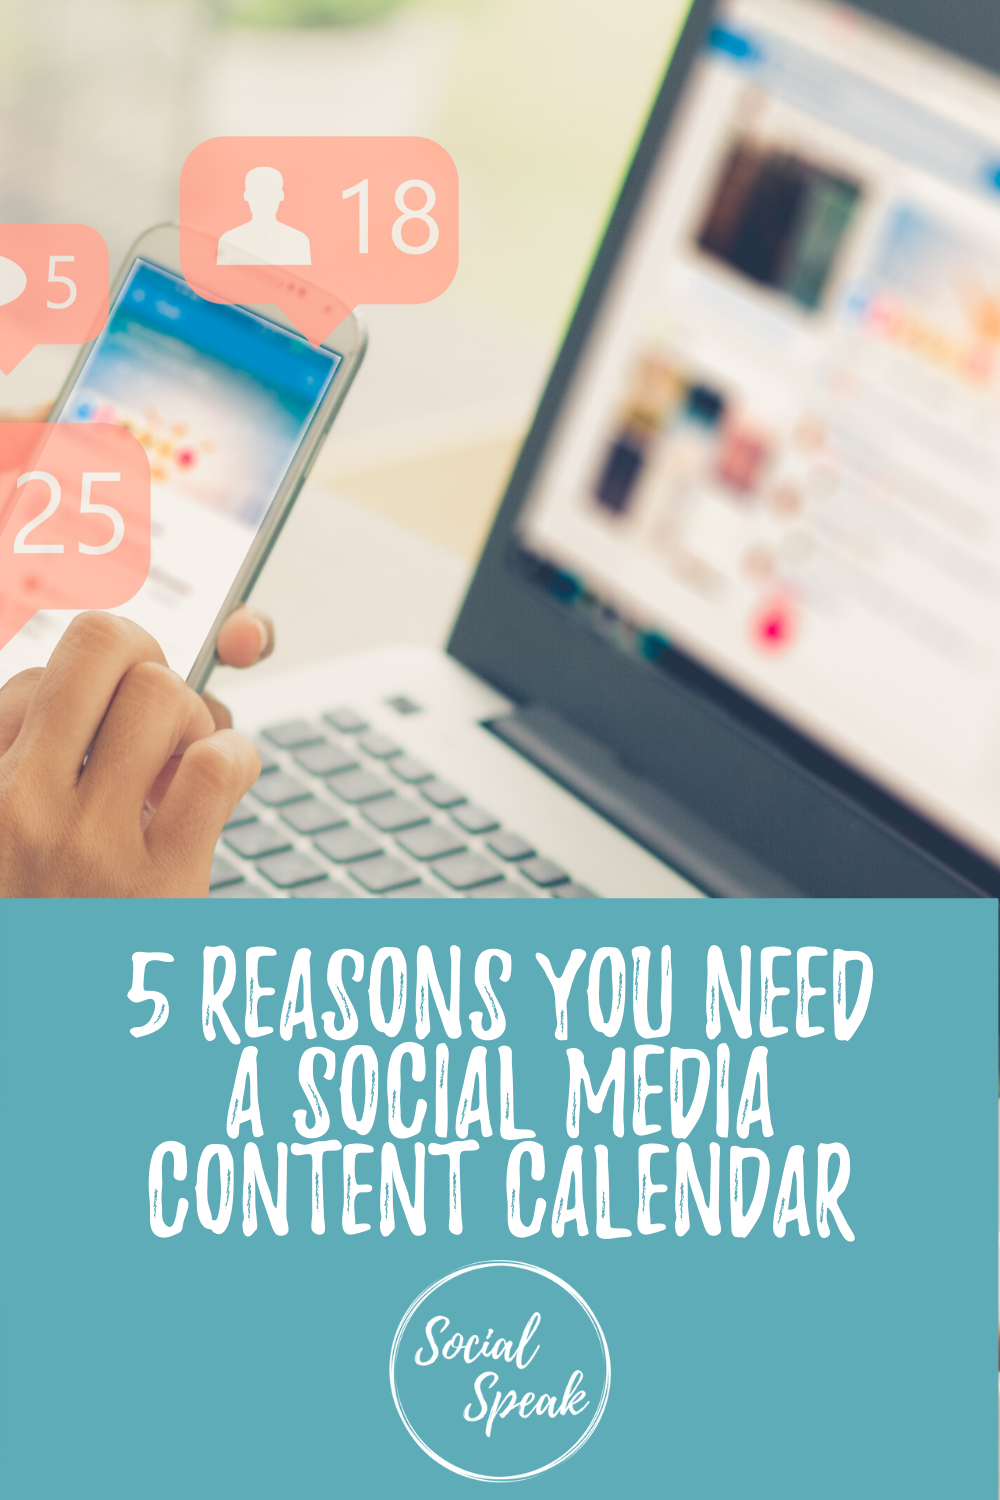 5 Reasons You Need a Social Media Content Calendar